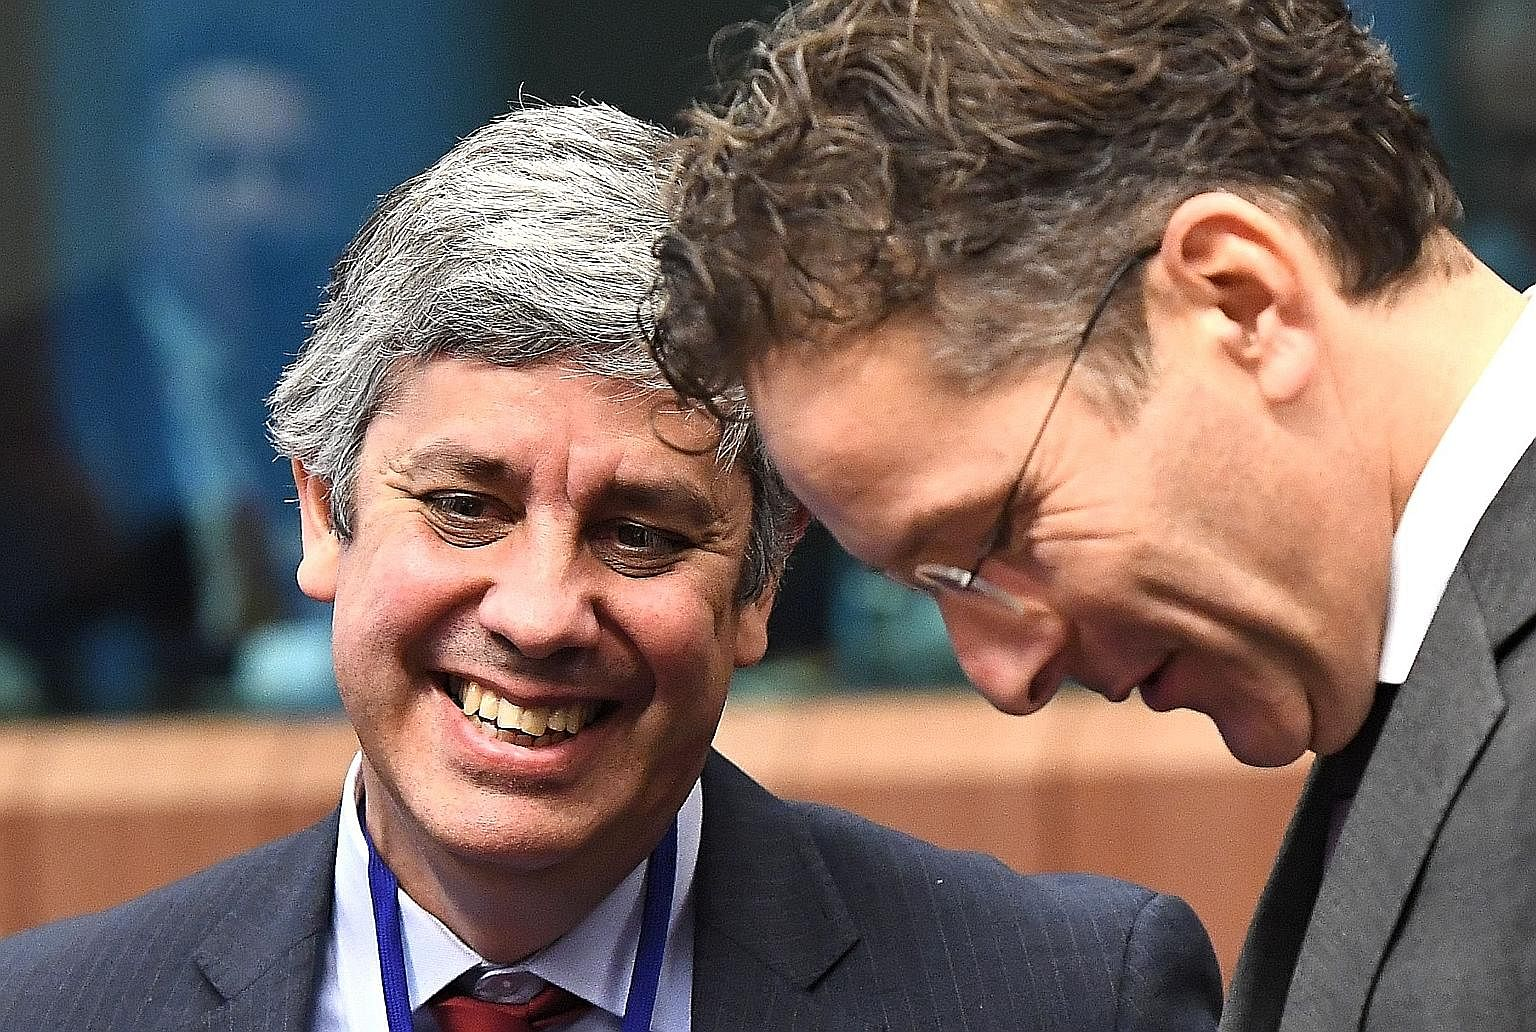 Eurogroup president Jeroen Dijsselbloem (right) and Portugal's Finance Minister Mario Centeno last month. Mr Centeno is the leading contender to replace Mr Dijsselbloem after the latter's term ends in January. Also in the shortlist of candidates aimi